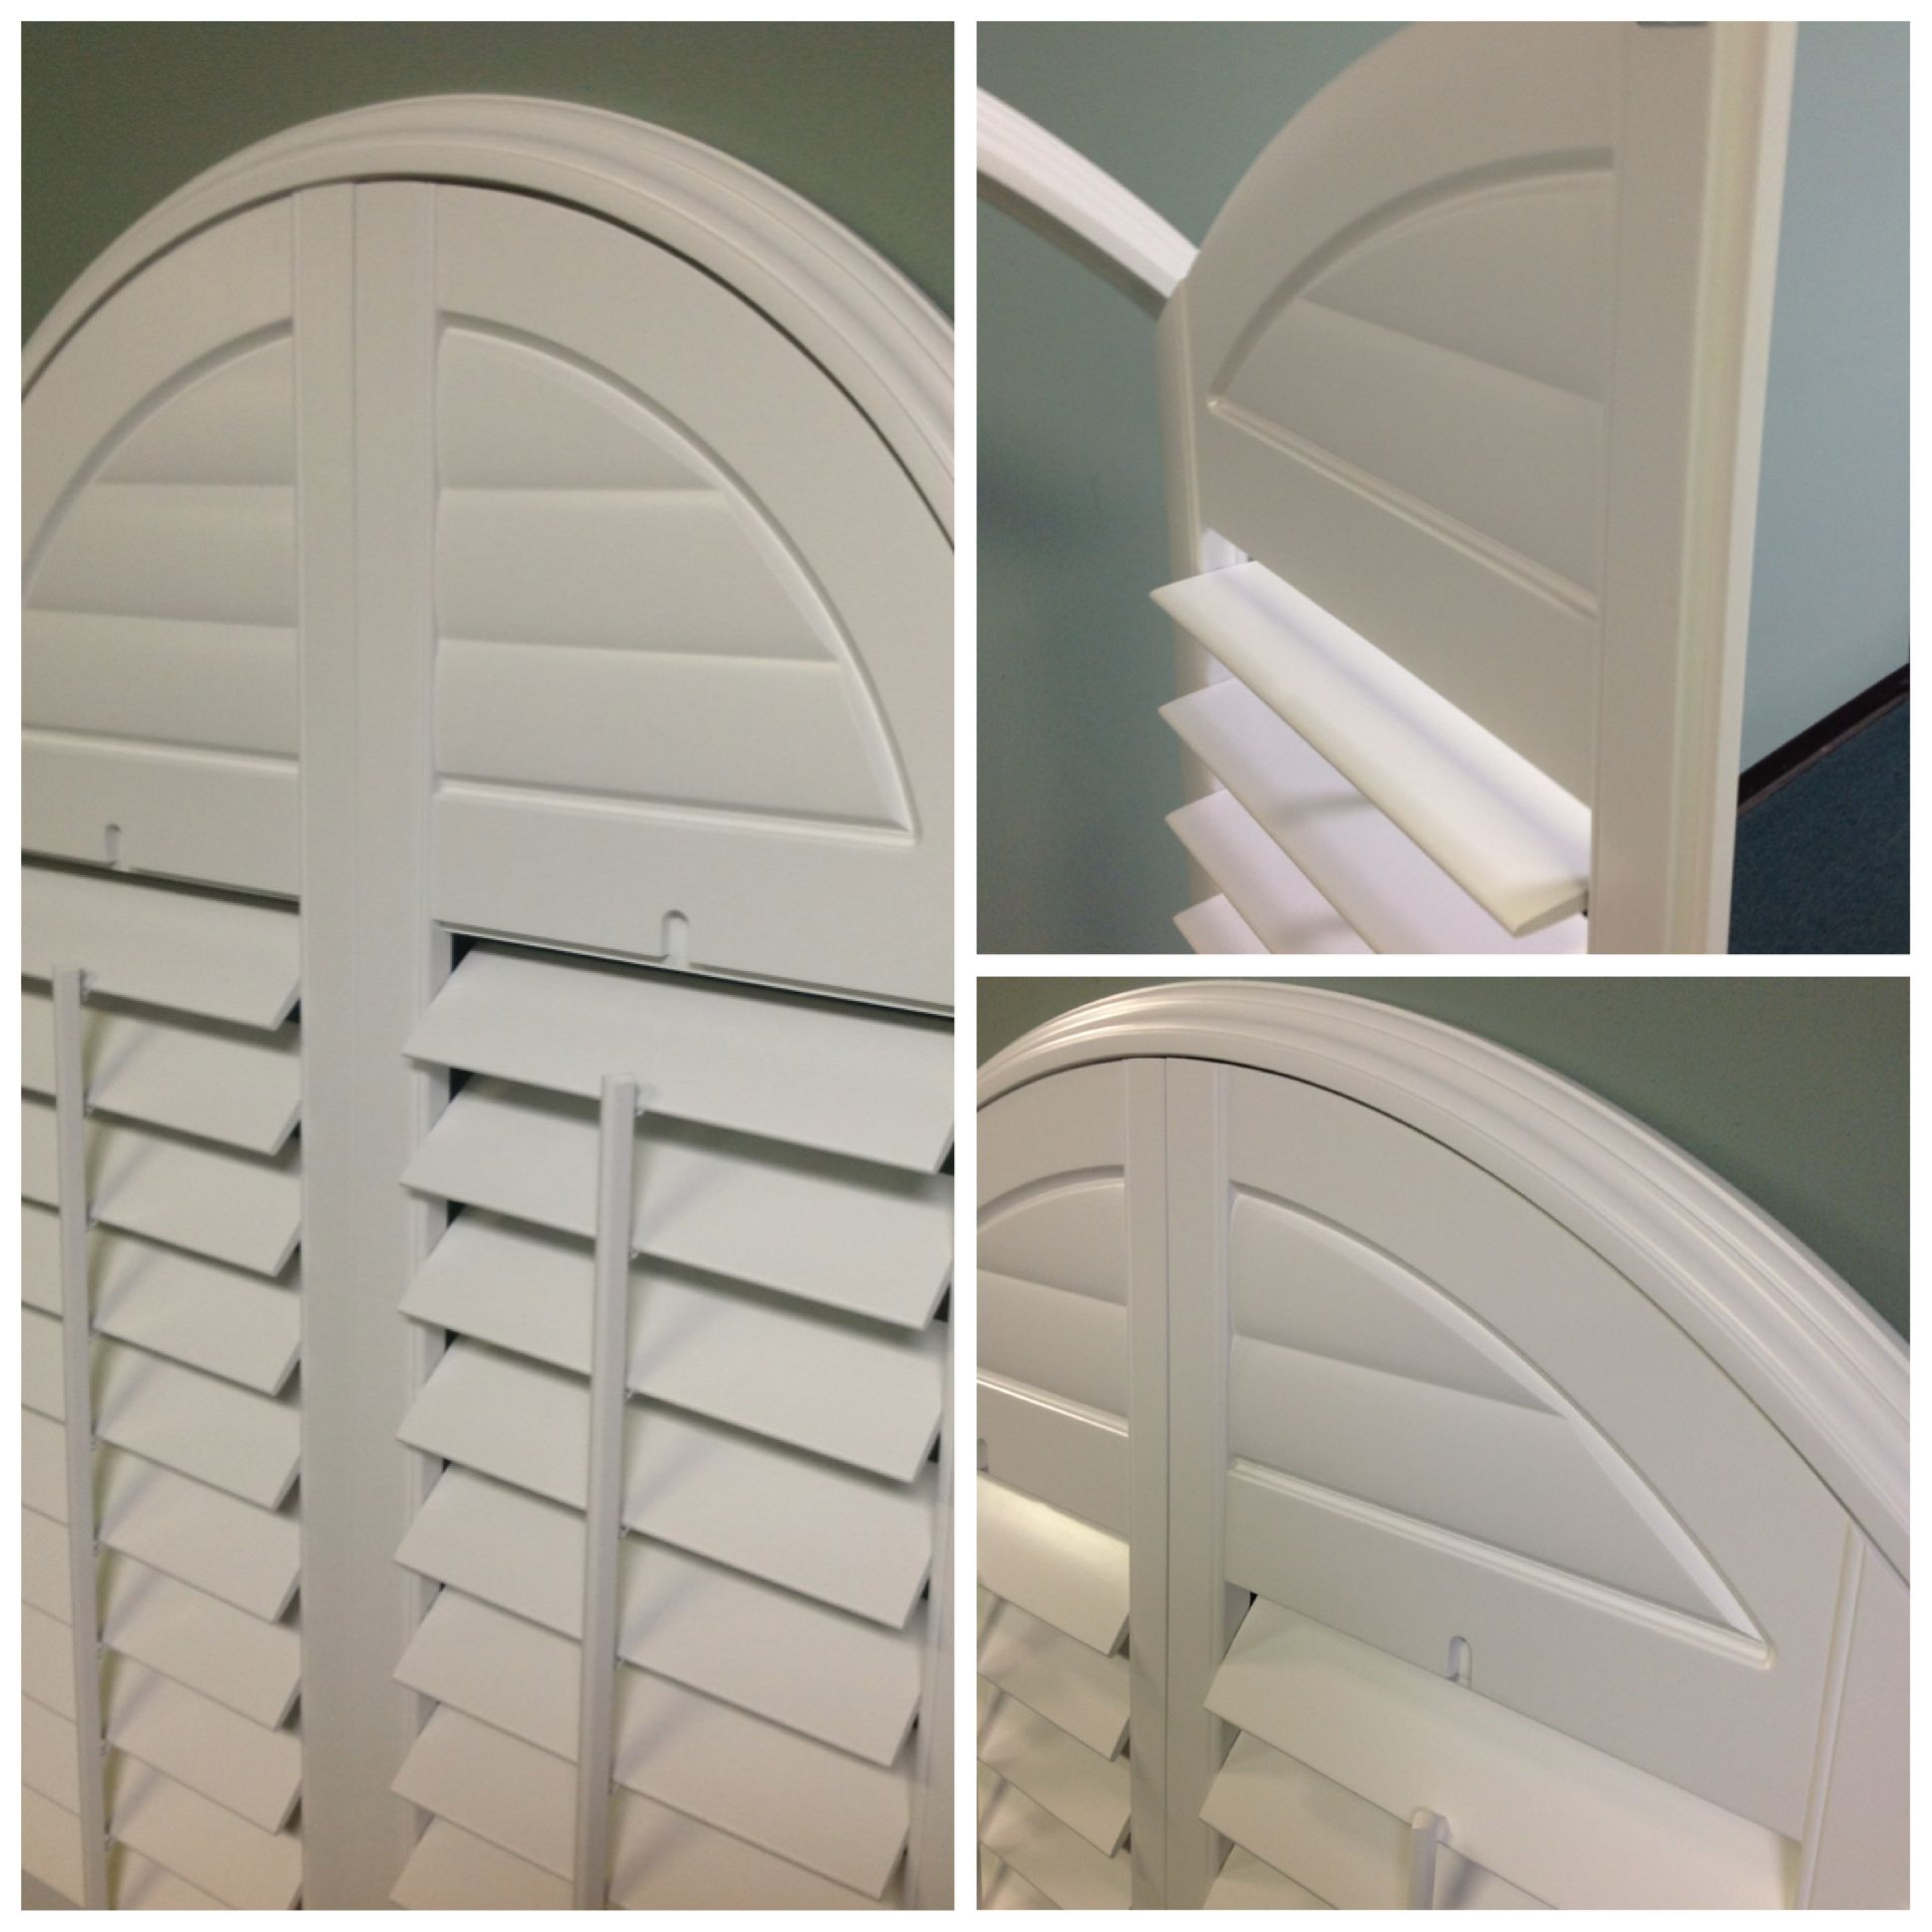 New Post Oak Arch Series From Rockwood Shutters Louvers Are Etched Front And Back Into A Solid